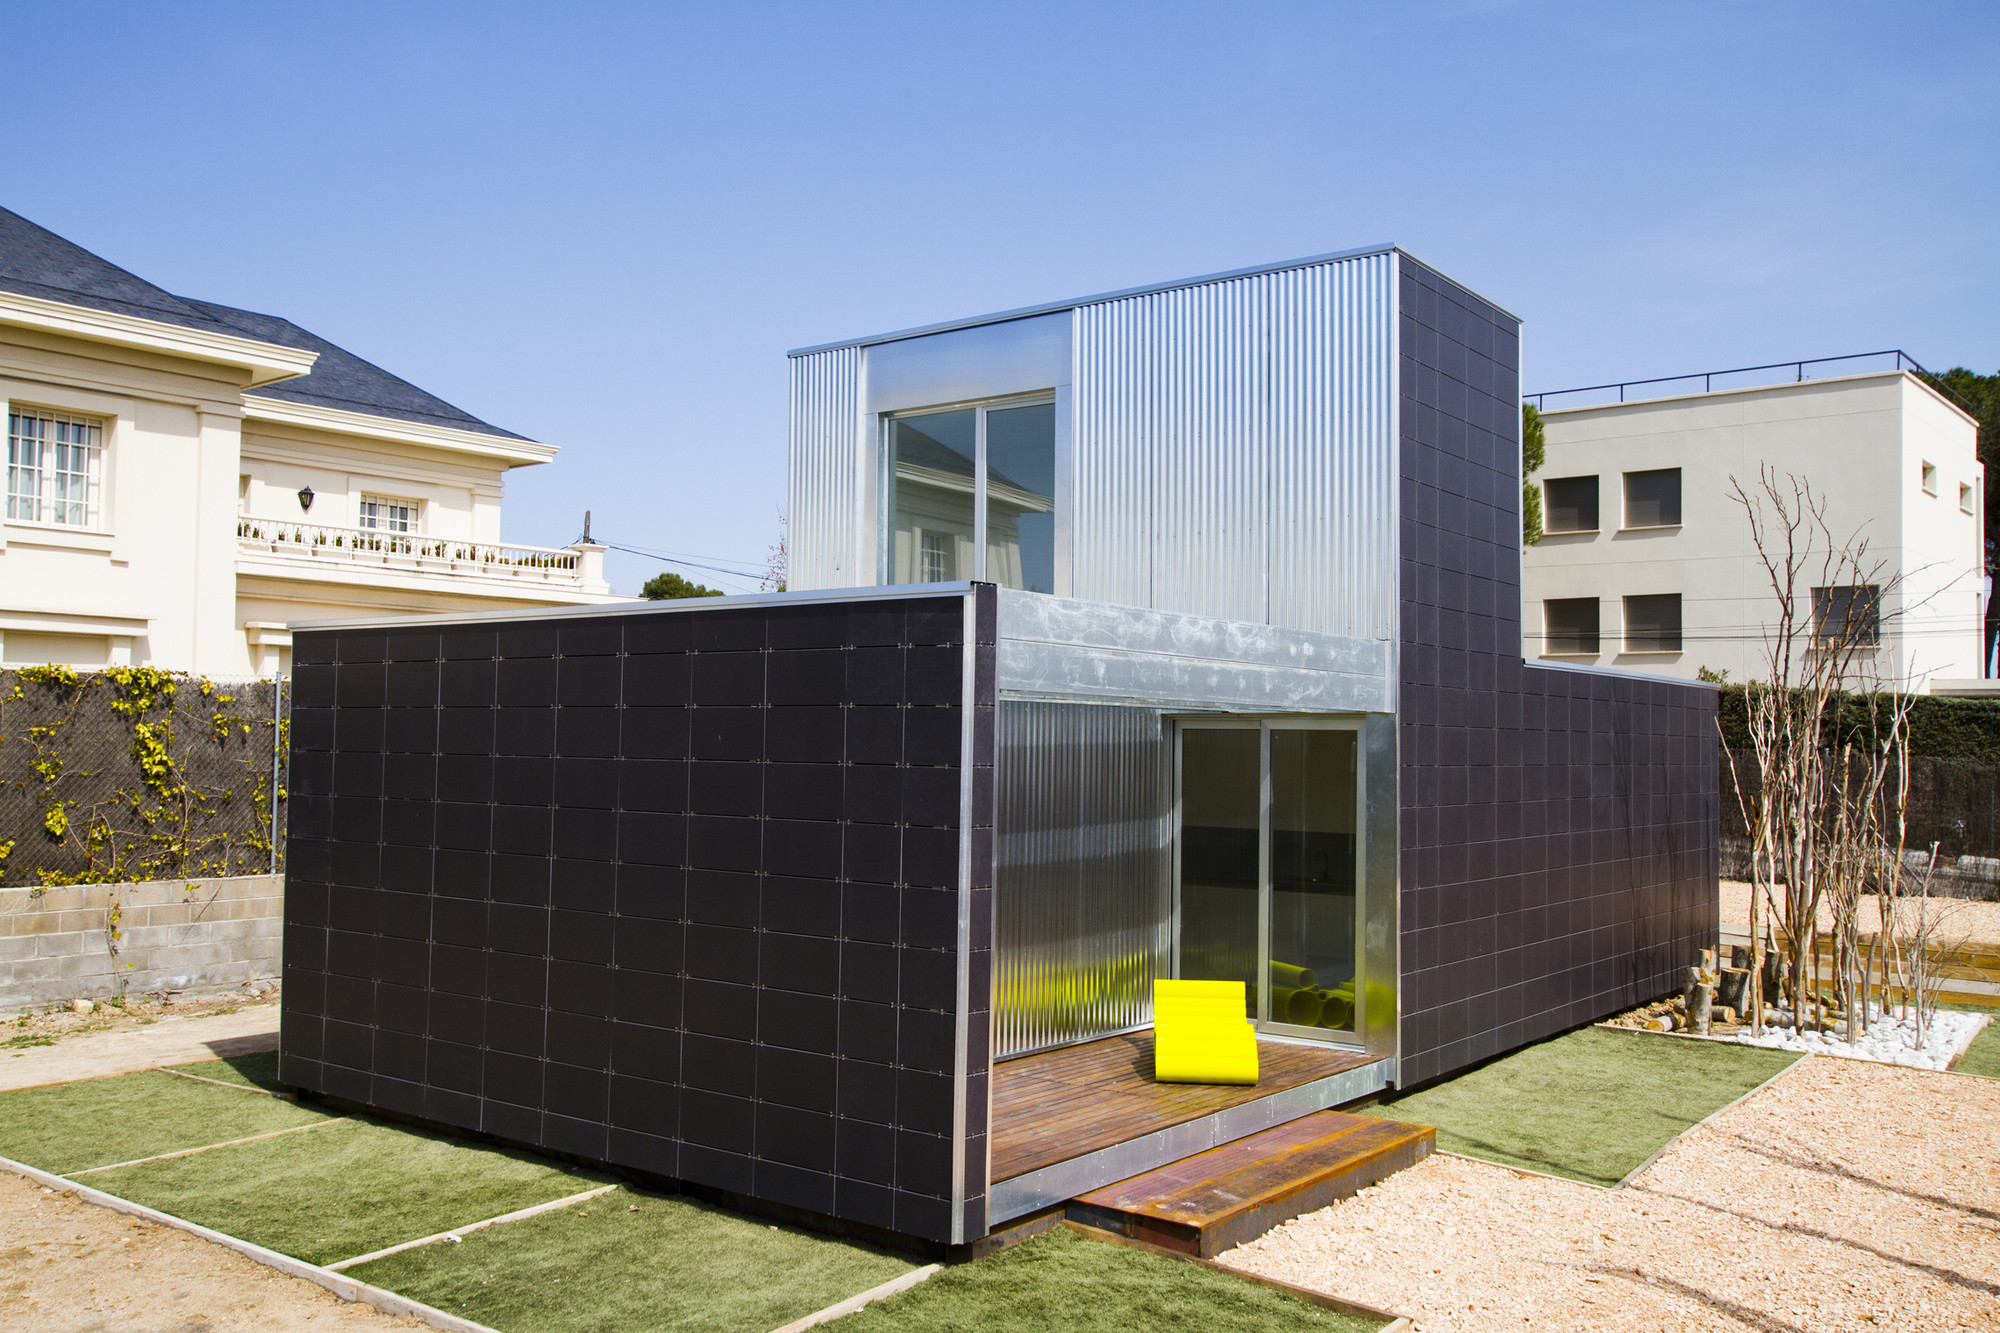 Gallery of open modular system of sustainable houses for Prefab units